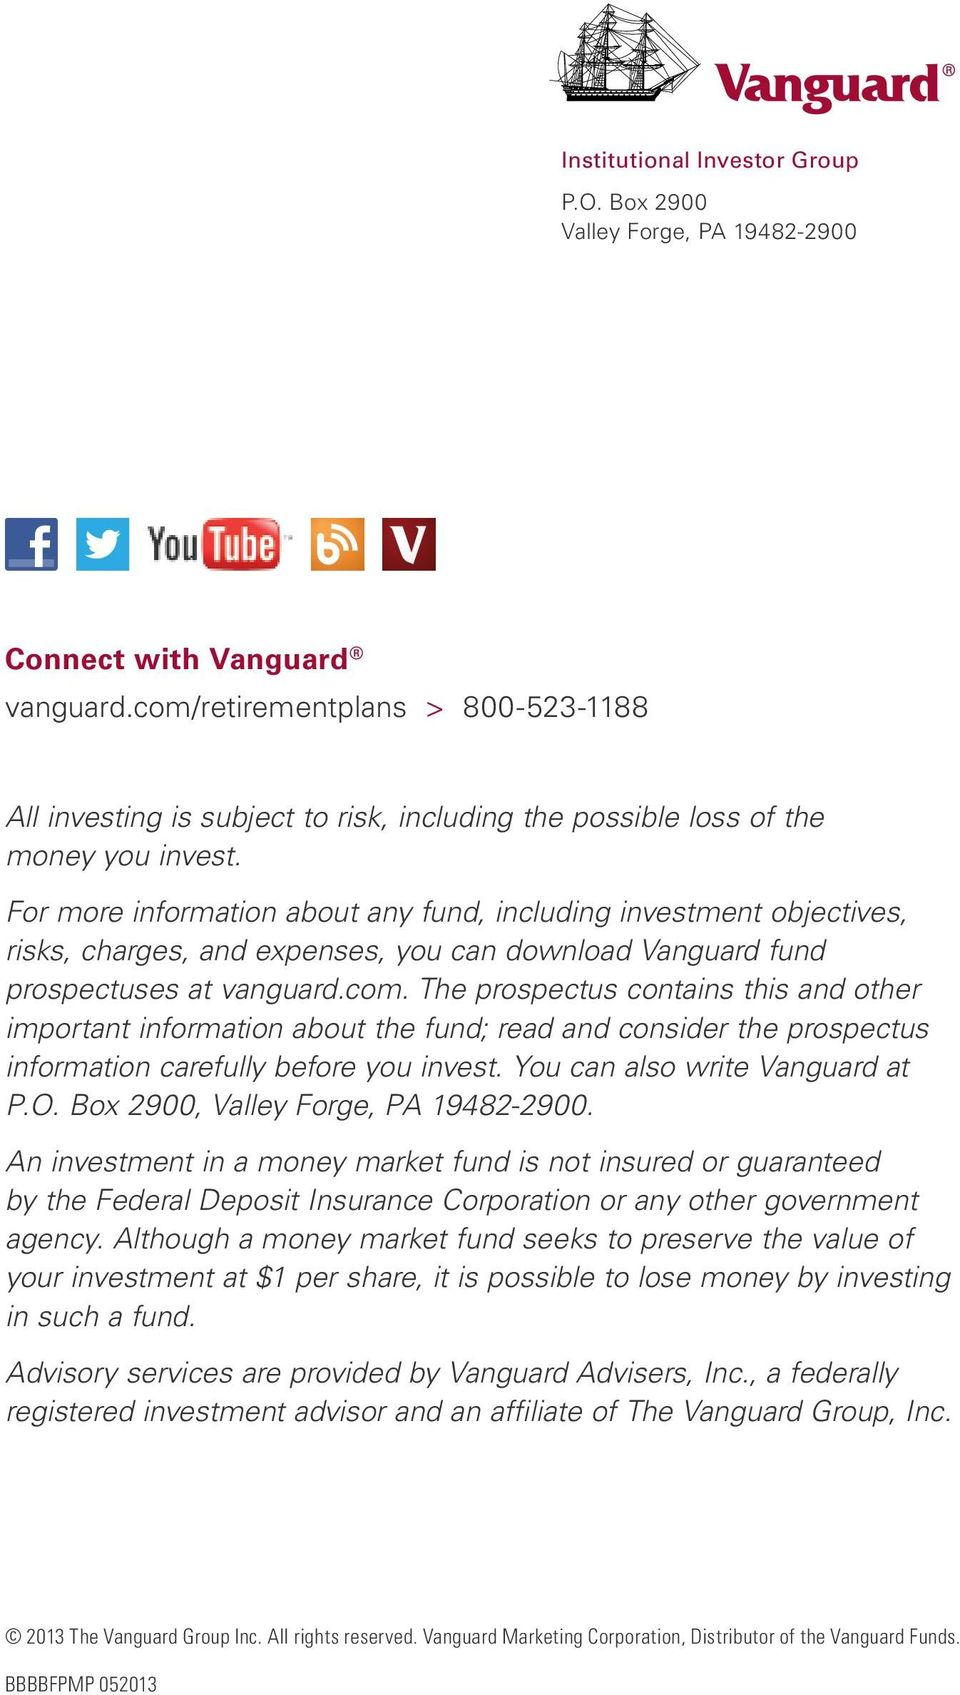 For more information about any fund, including investment objectives, risks, charges, and expenses, you can download Vanguard fund prospectuses at vanguard.com.